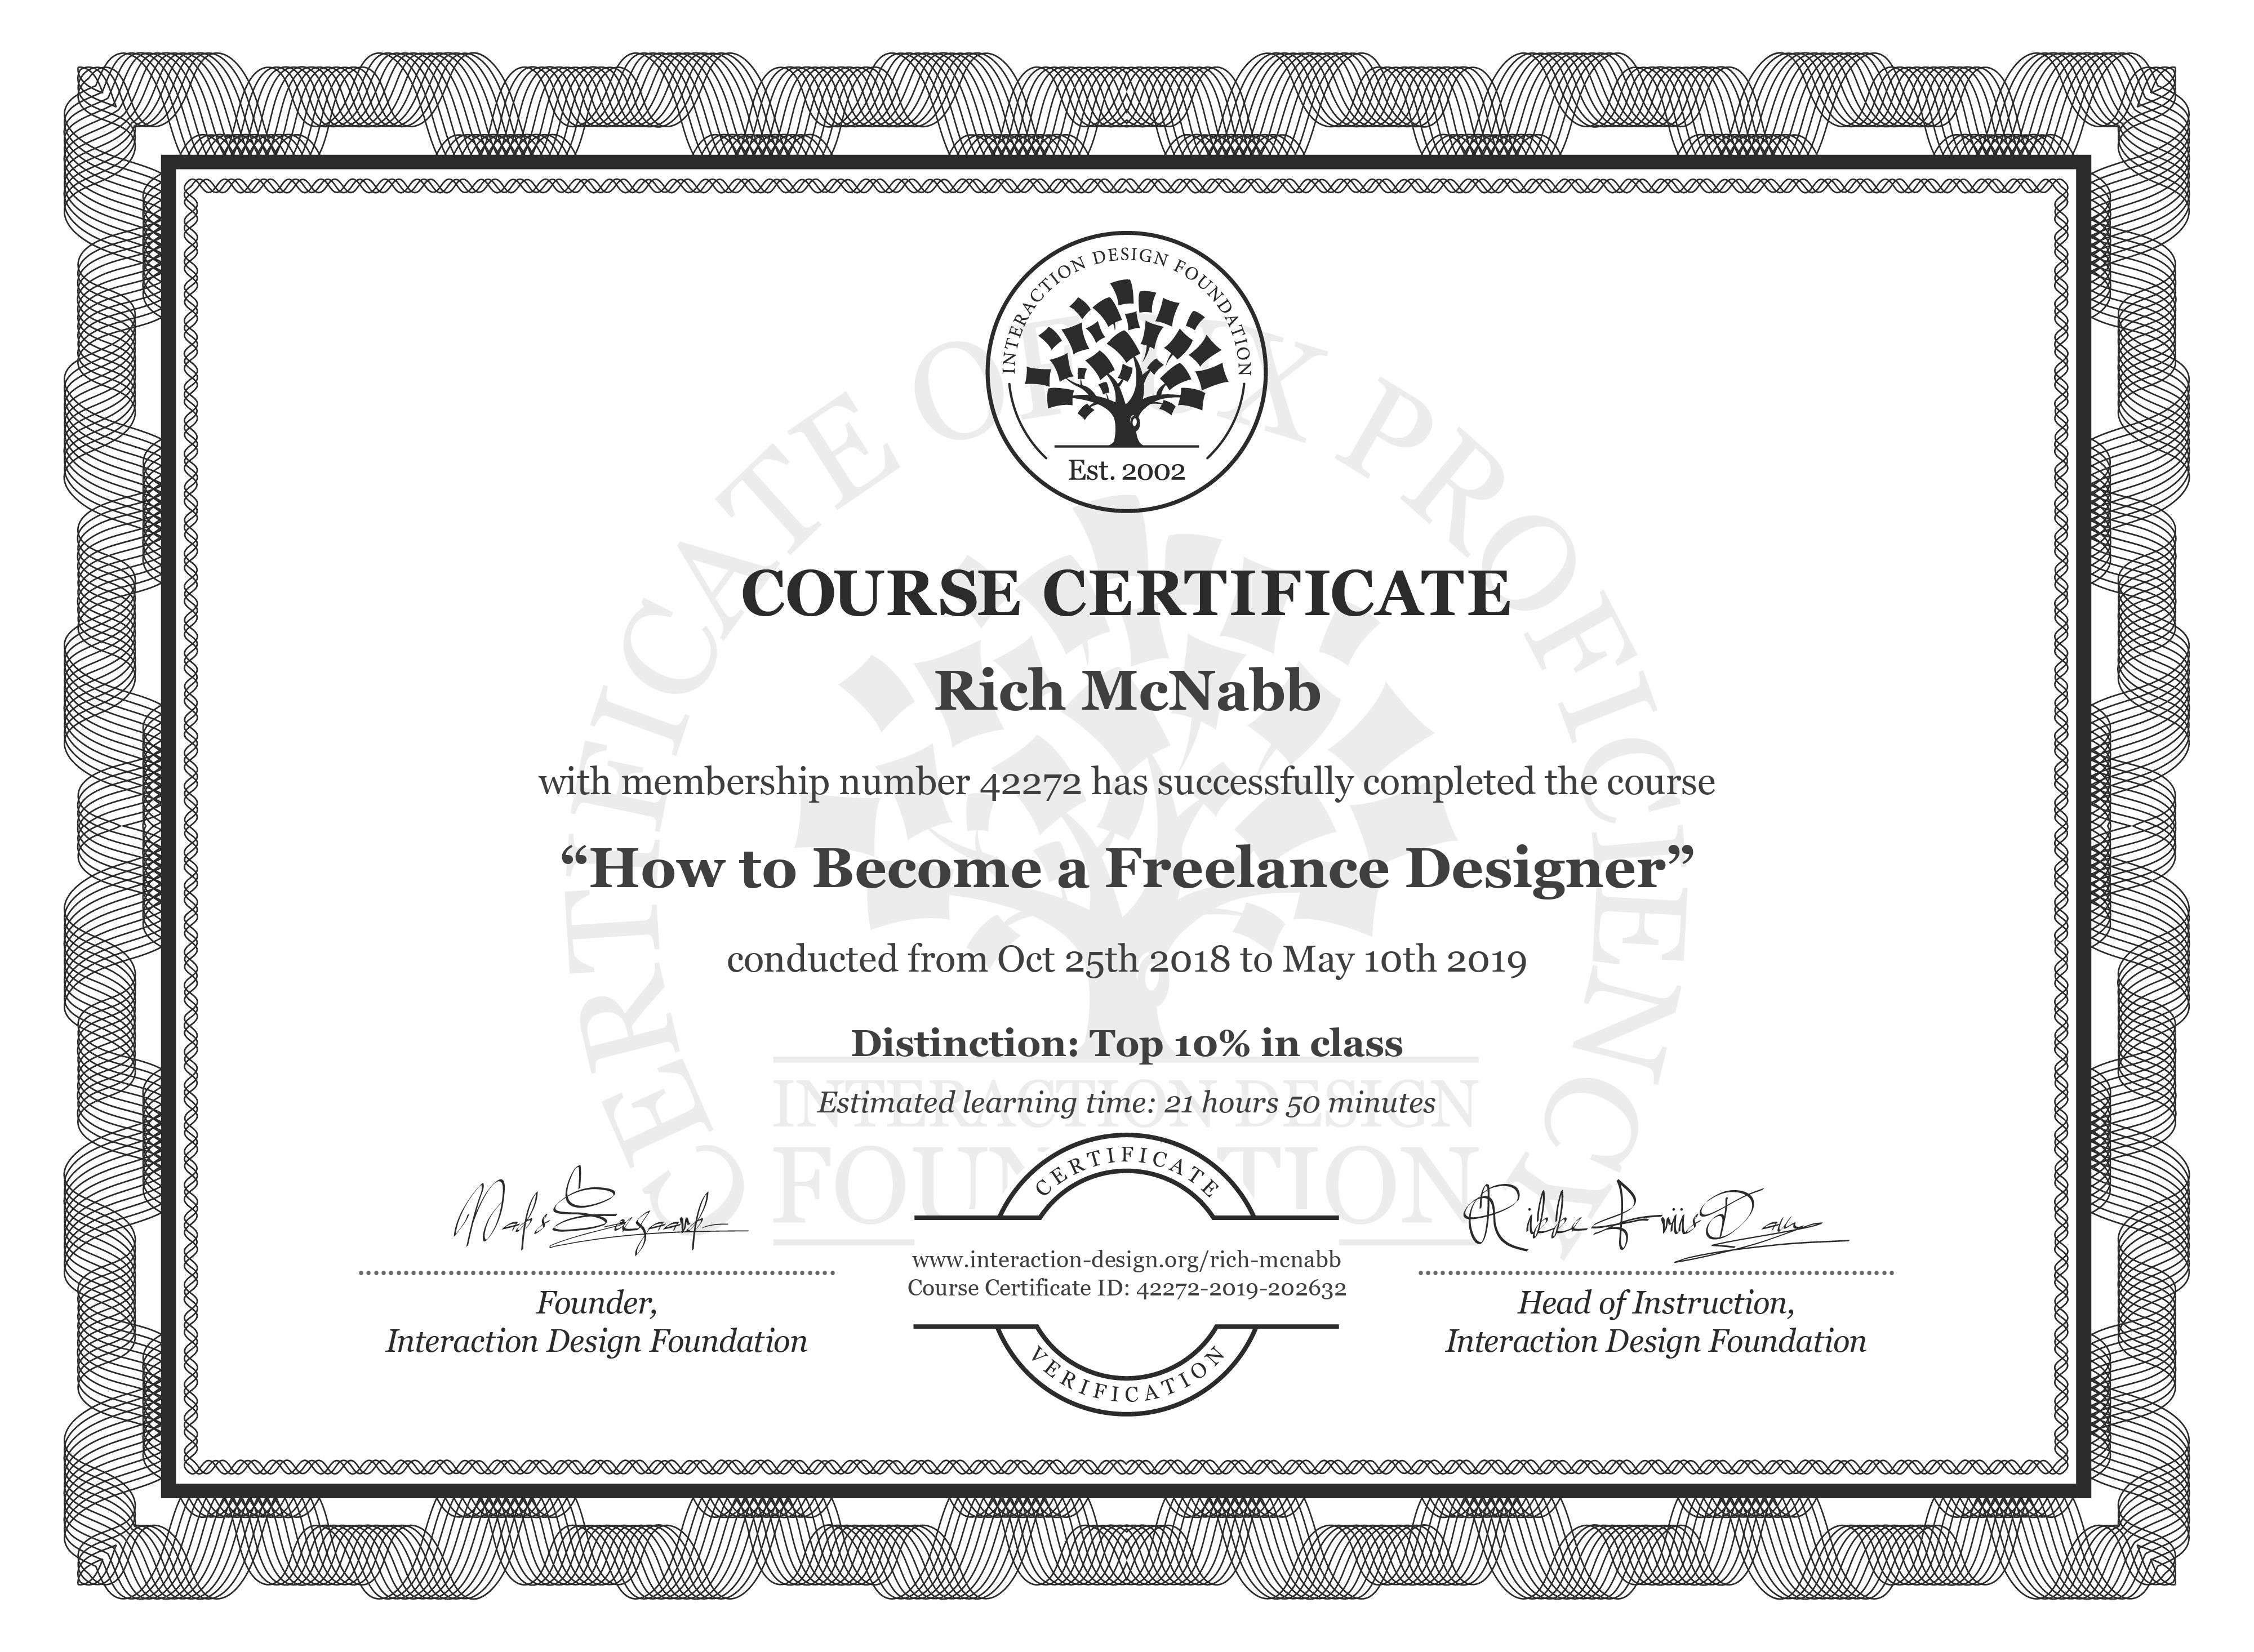 Rich McNabb: Course Certificate - How to Become a Freelance Designer